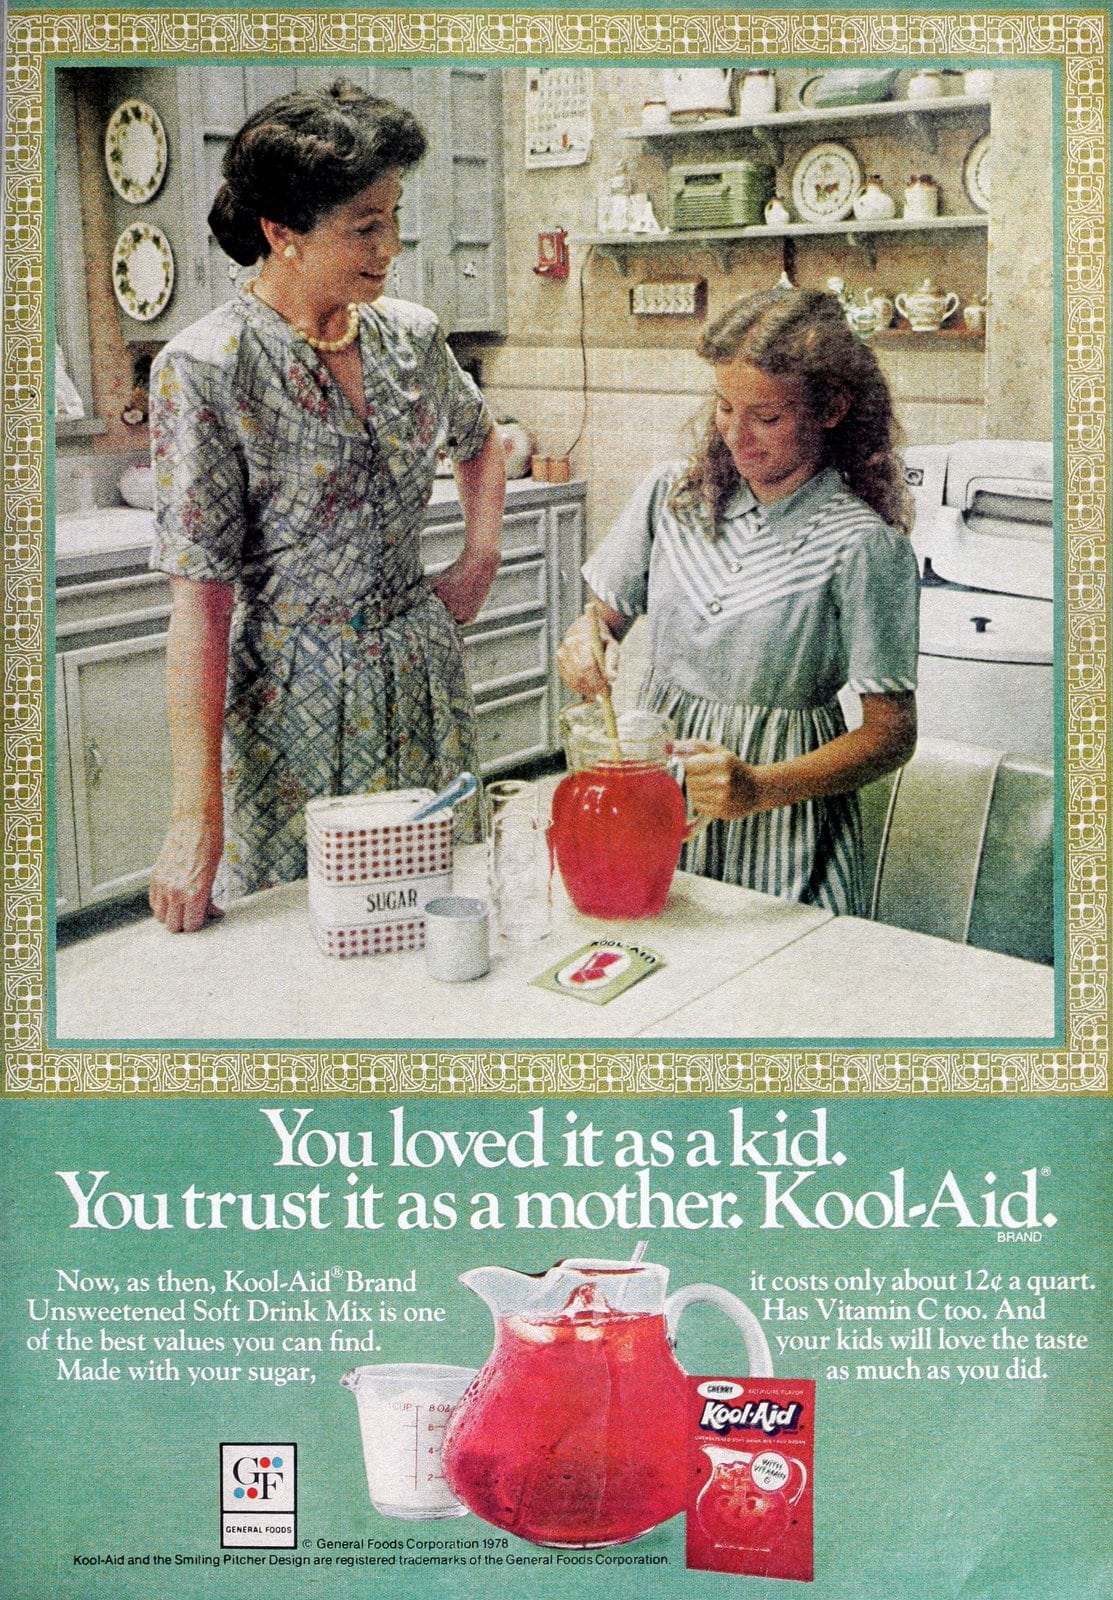 Vintage Kool-Aid ad - Trust it as a mother (1978)